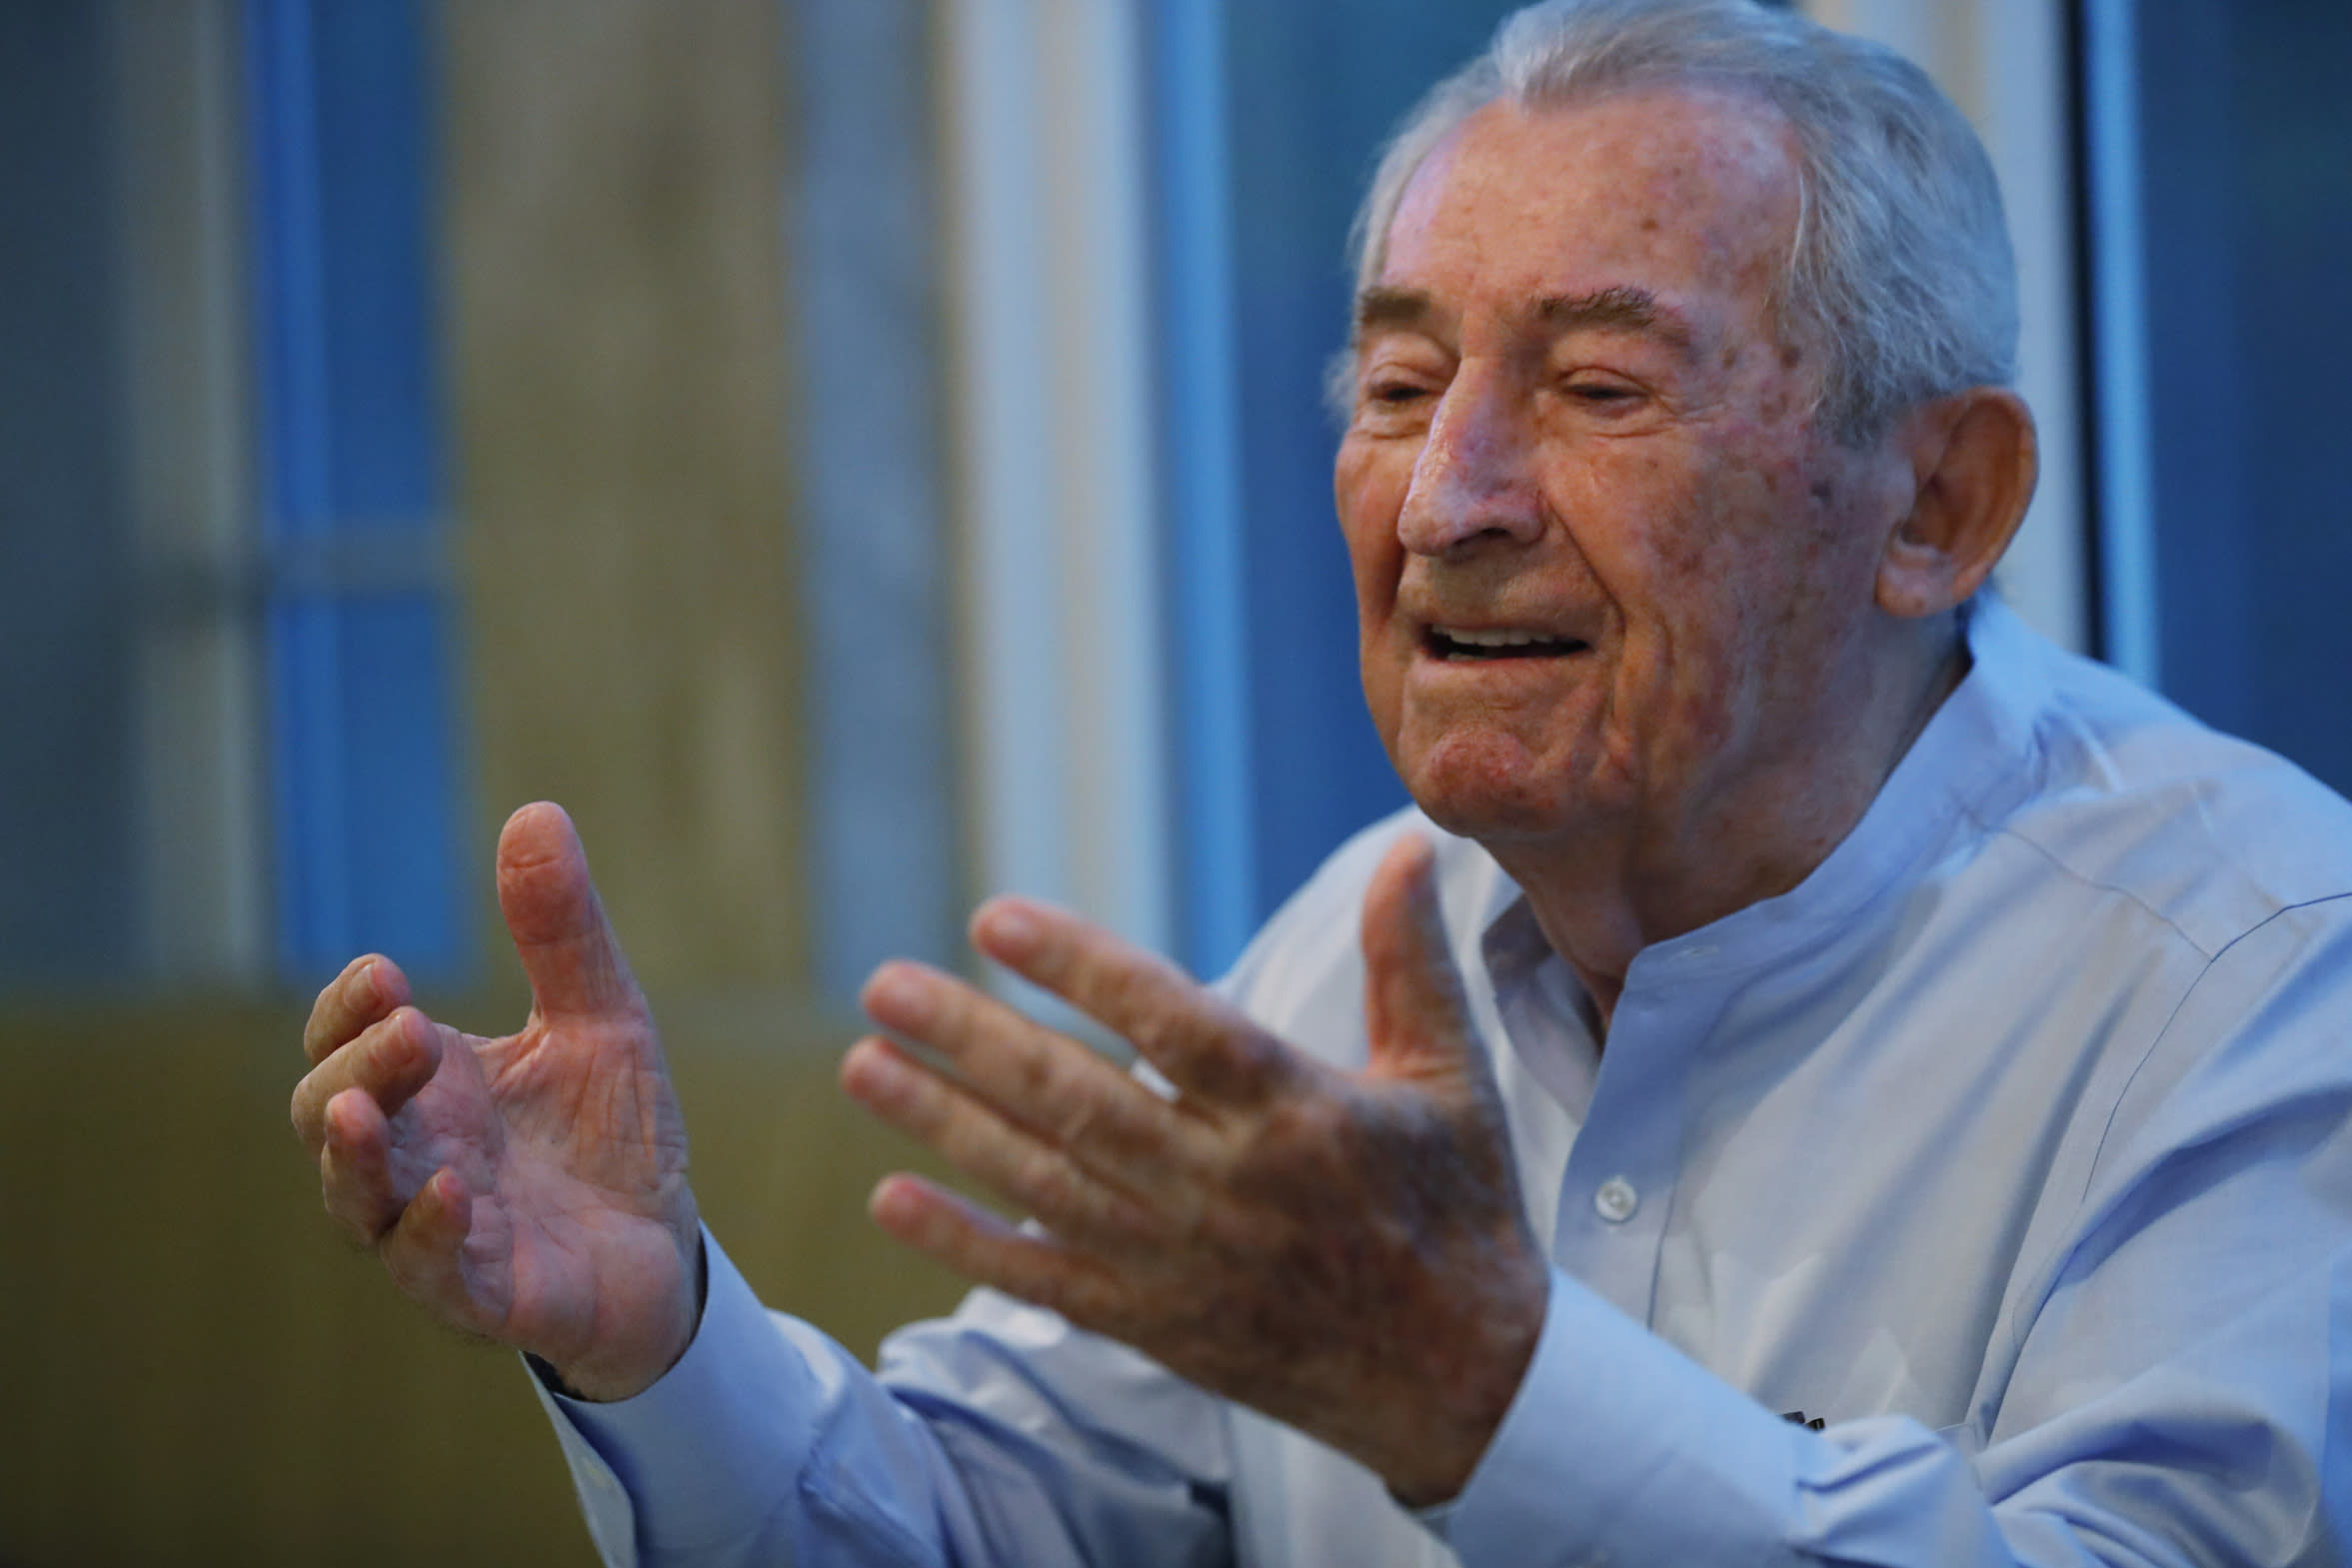 In this, Monday, Oct. 7, 2019 photo, David Schaecter, president of the Holocaust Survivors Foundation USA (HSF), gestures as he speaks during an interview with The Associated Press in Aventura, Fla. Aging Holocaust survivors are trying to recover insurance benefits that were never honored by Nazi-era companies, which could be worth billions of dollars. The companies have demanded original paperwork, such as death certificates, that were not available after World War II. The survivors want to take insurance companies to court in the U.S. to recover the money, but it would take an act of Congress to allow it. (AP Photo/Wilfredo Lee)